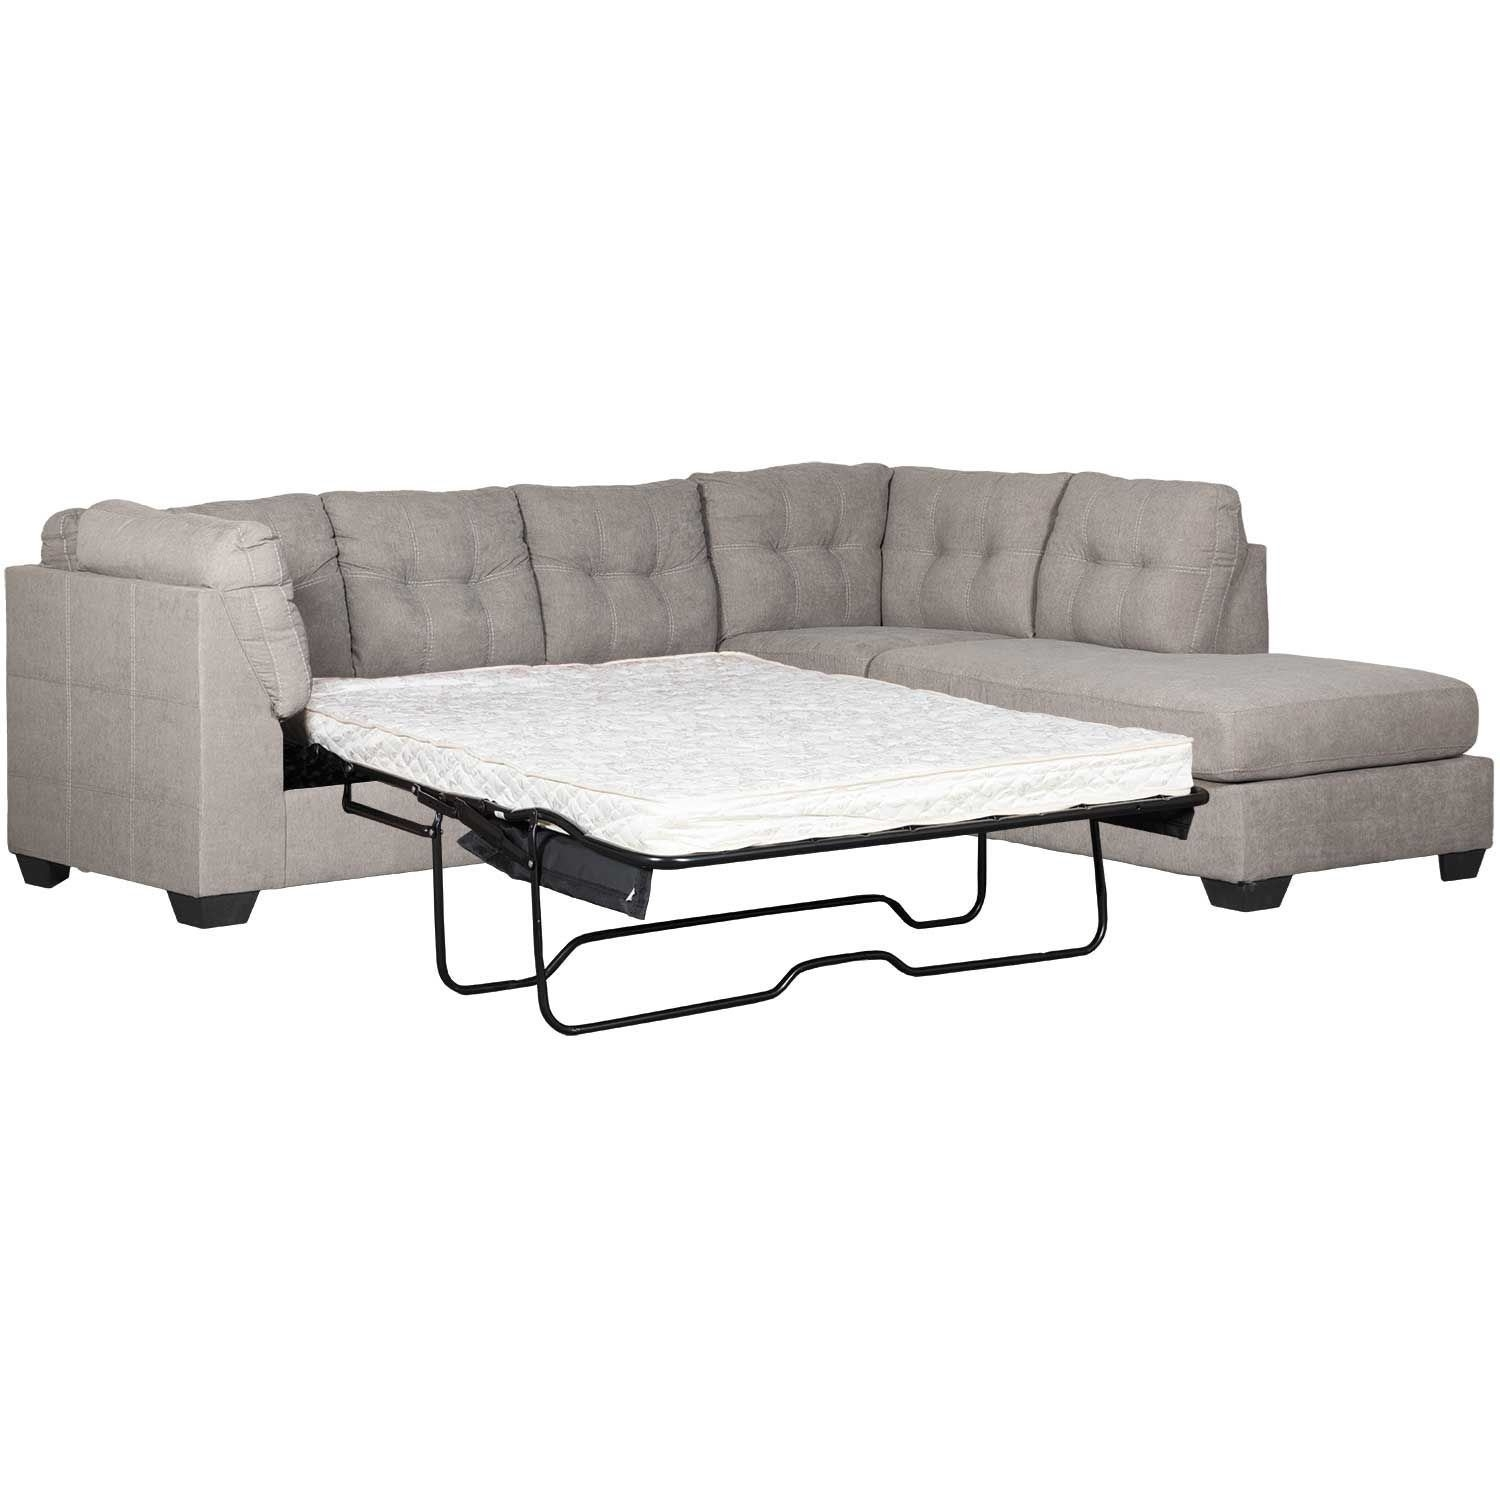 Maier Charcoal 2 Piece Sleeper Sectional With Raf Chaise | 4520017 Pertaining To Meyer 3 Piece Sectionals With Raf Chaise (View 19 of 25)